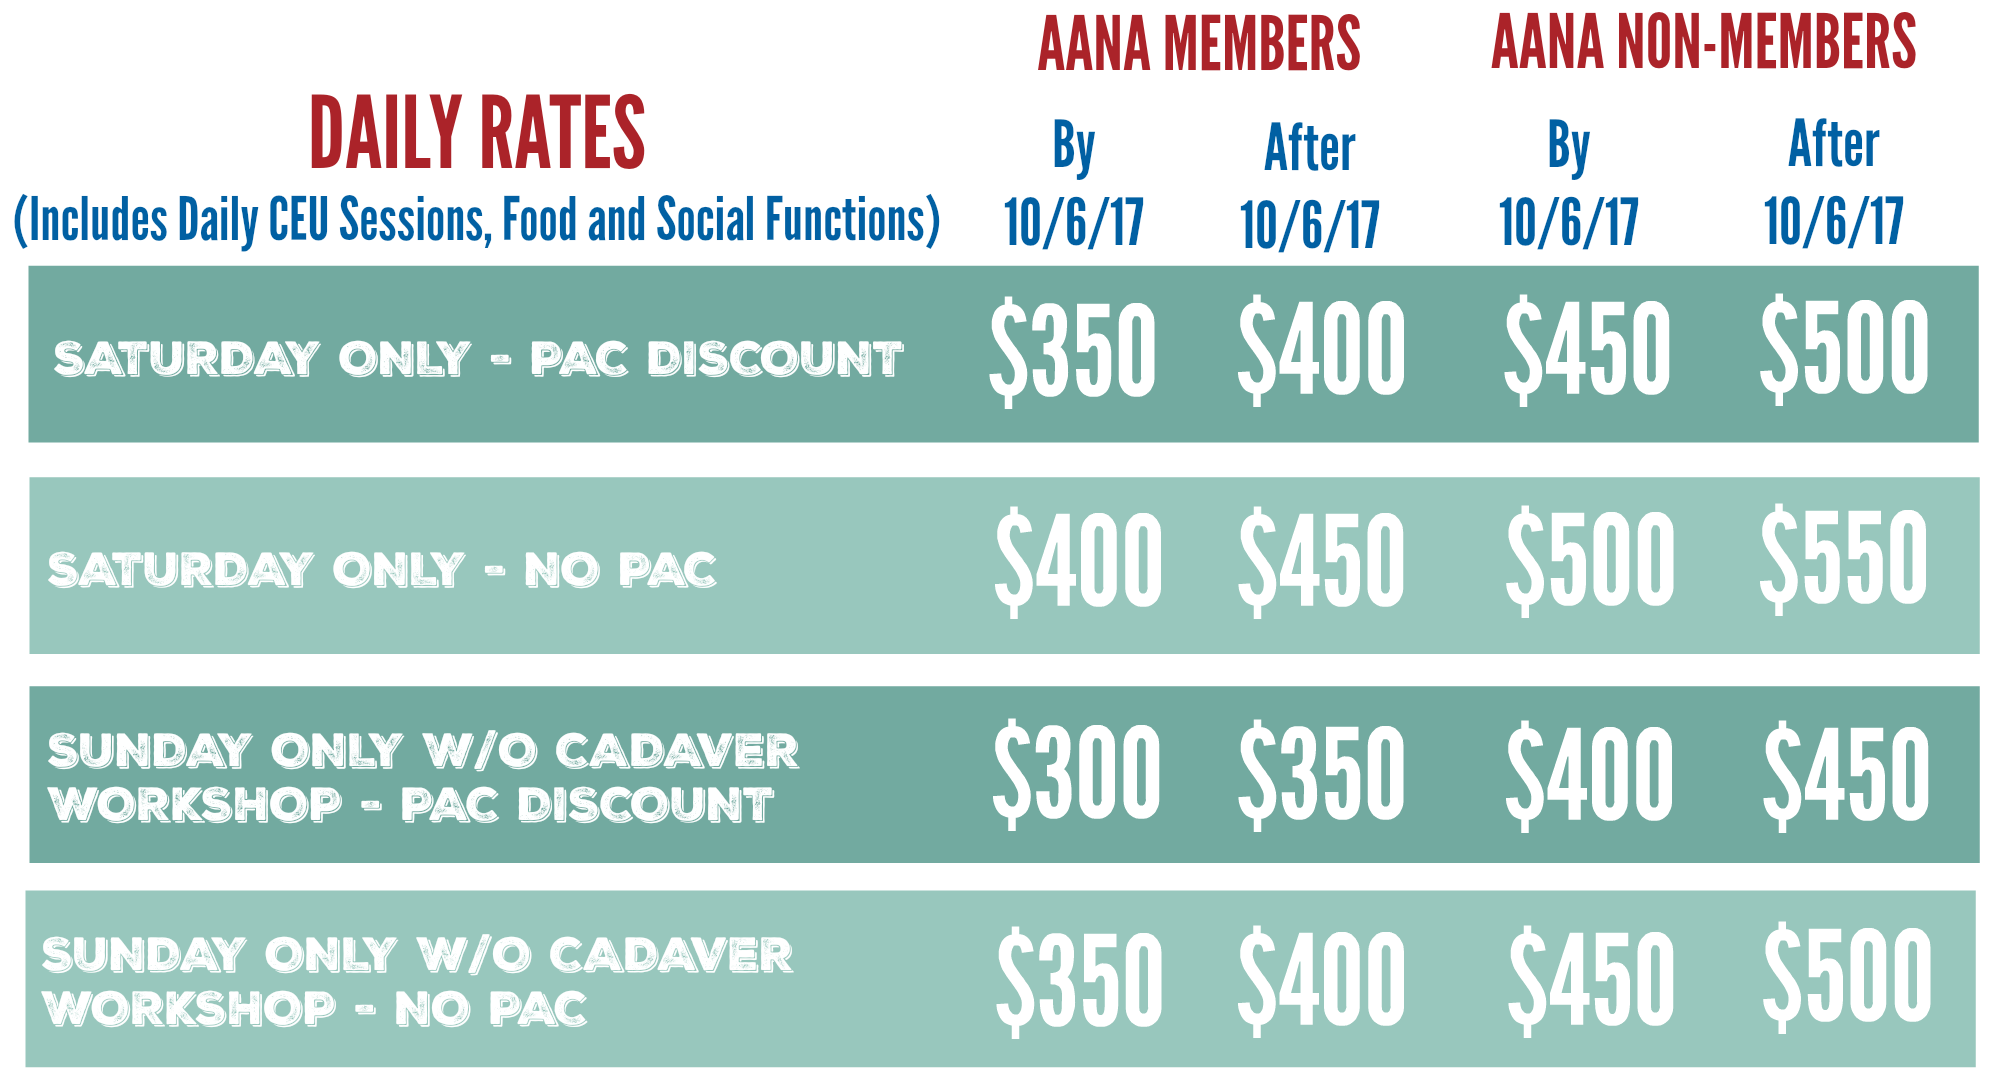 FANA Daily Annual Rates